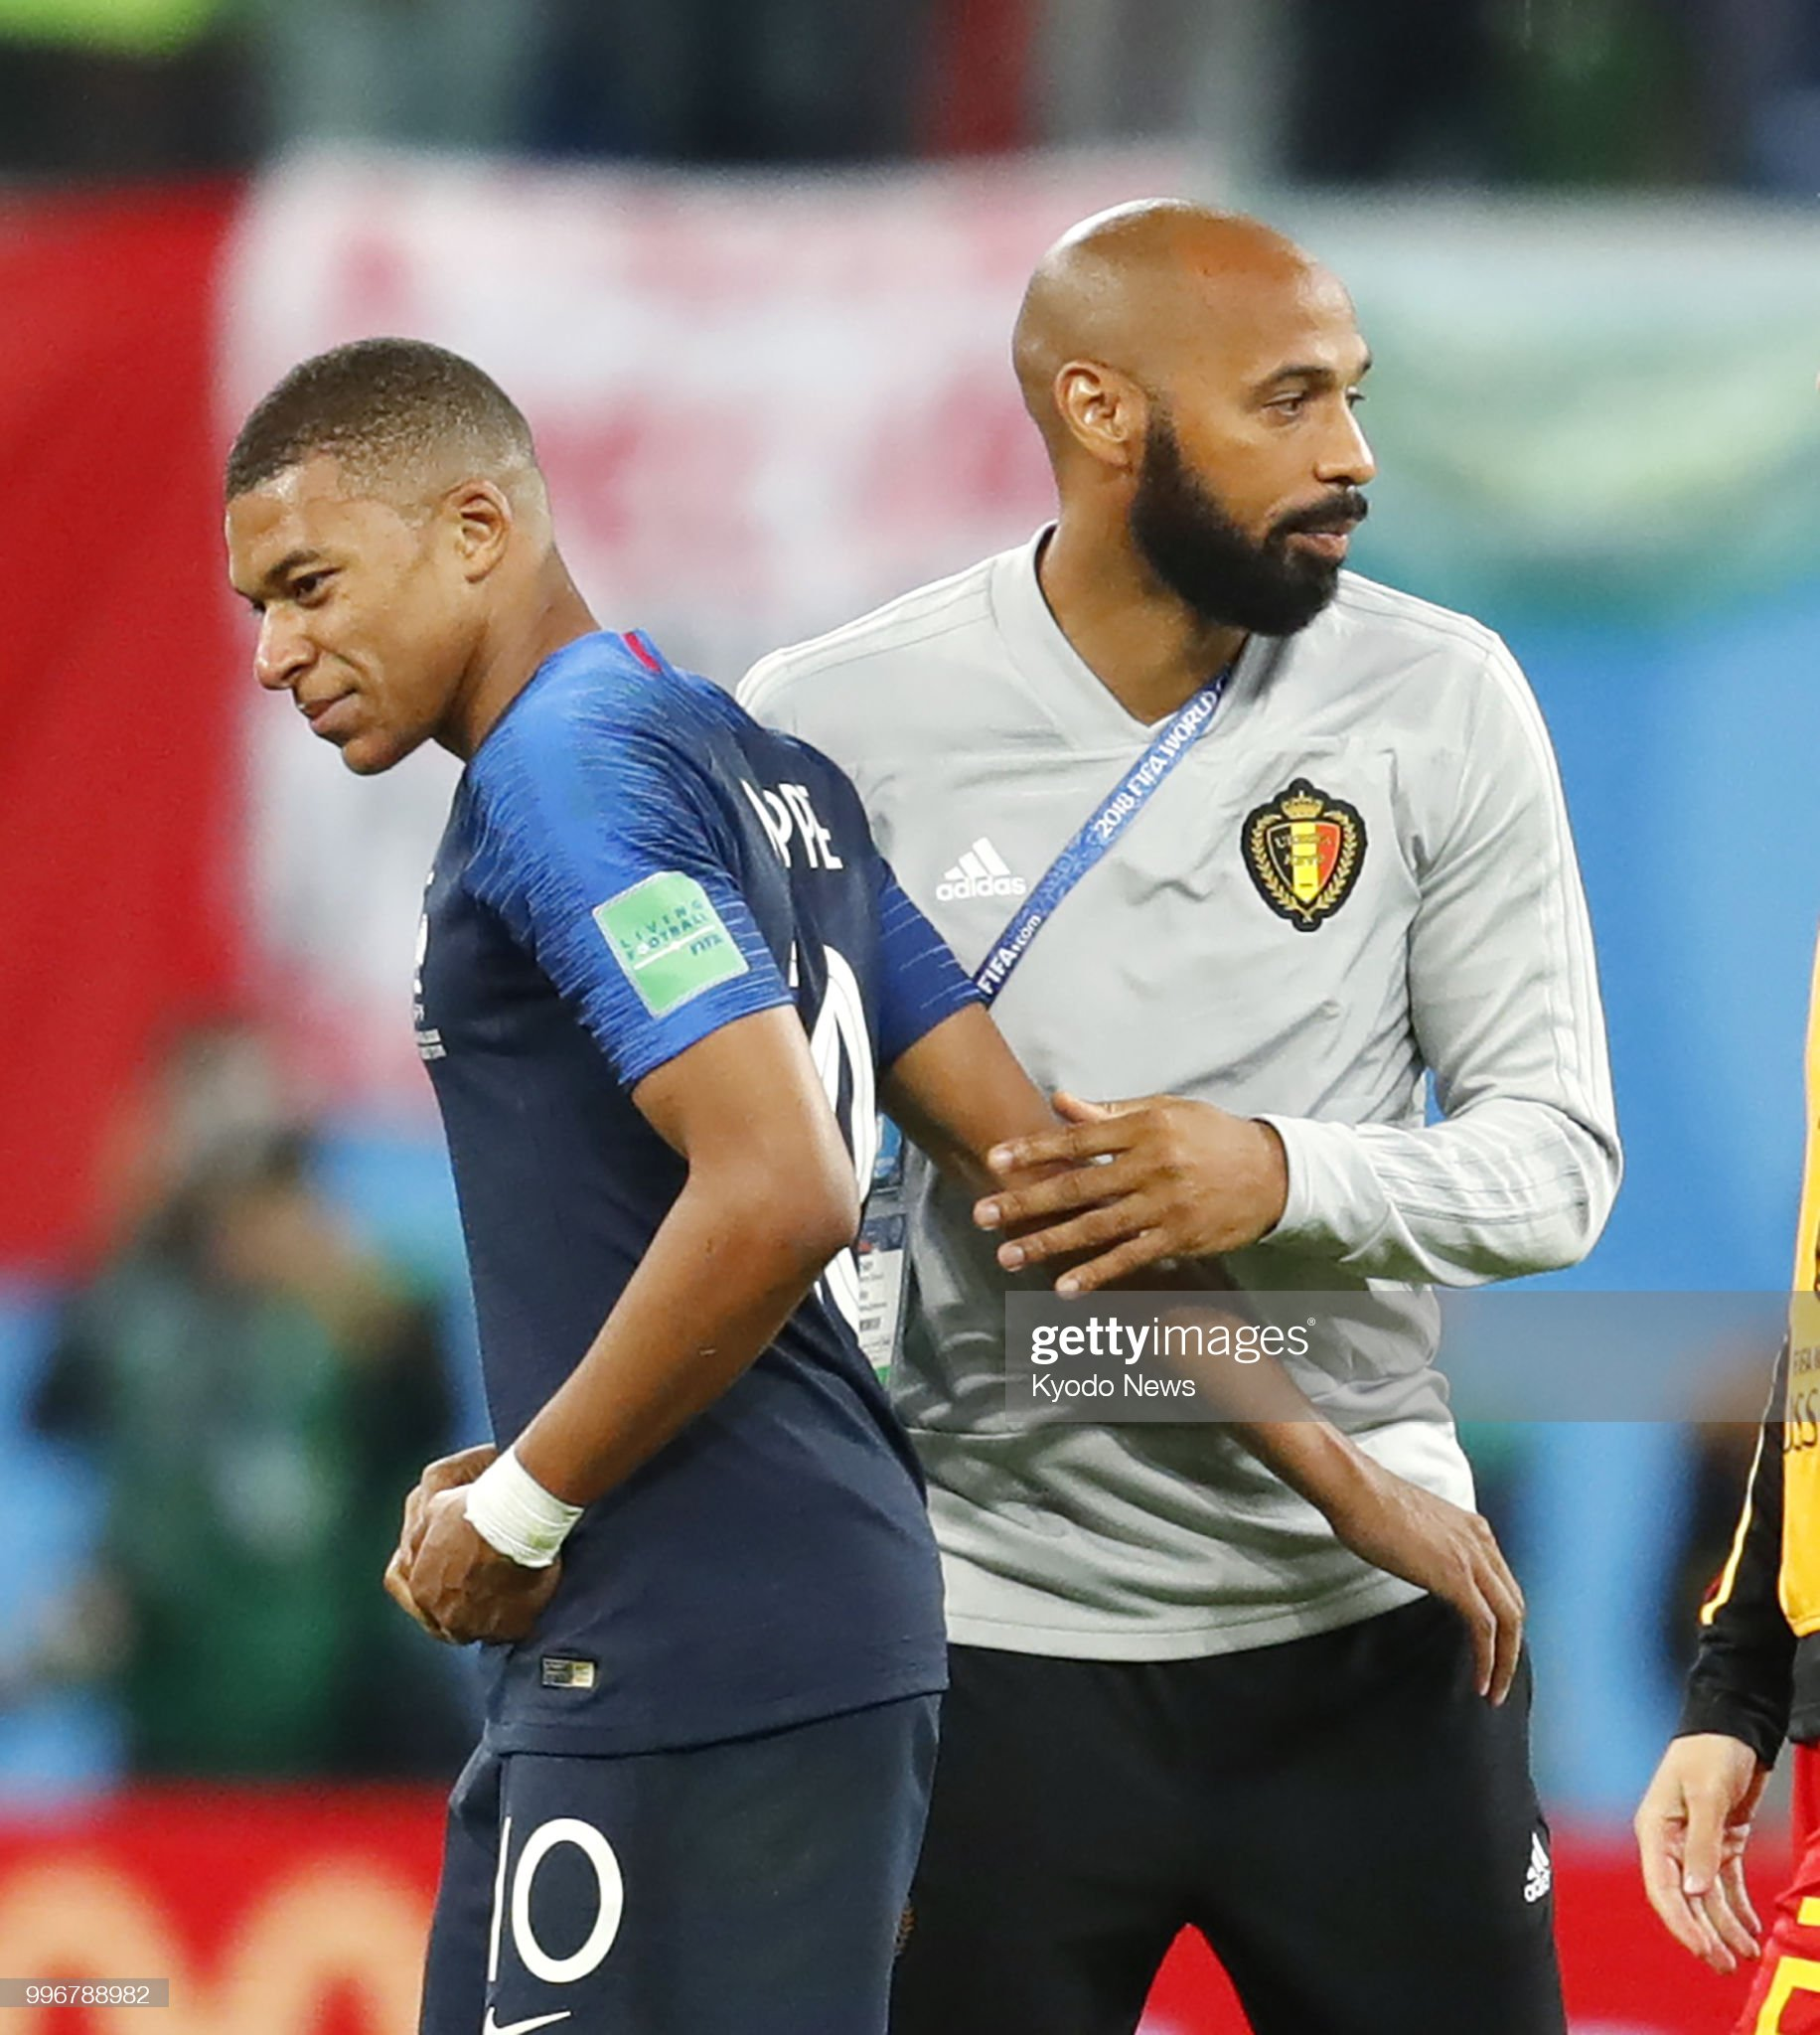 Football: Belgium coach Henry at World Cup : News Photo